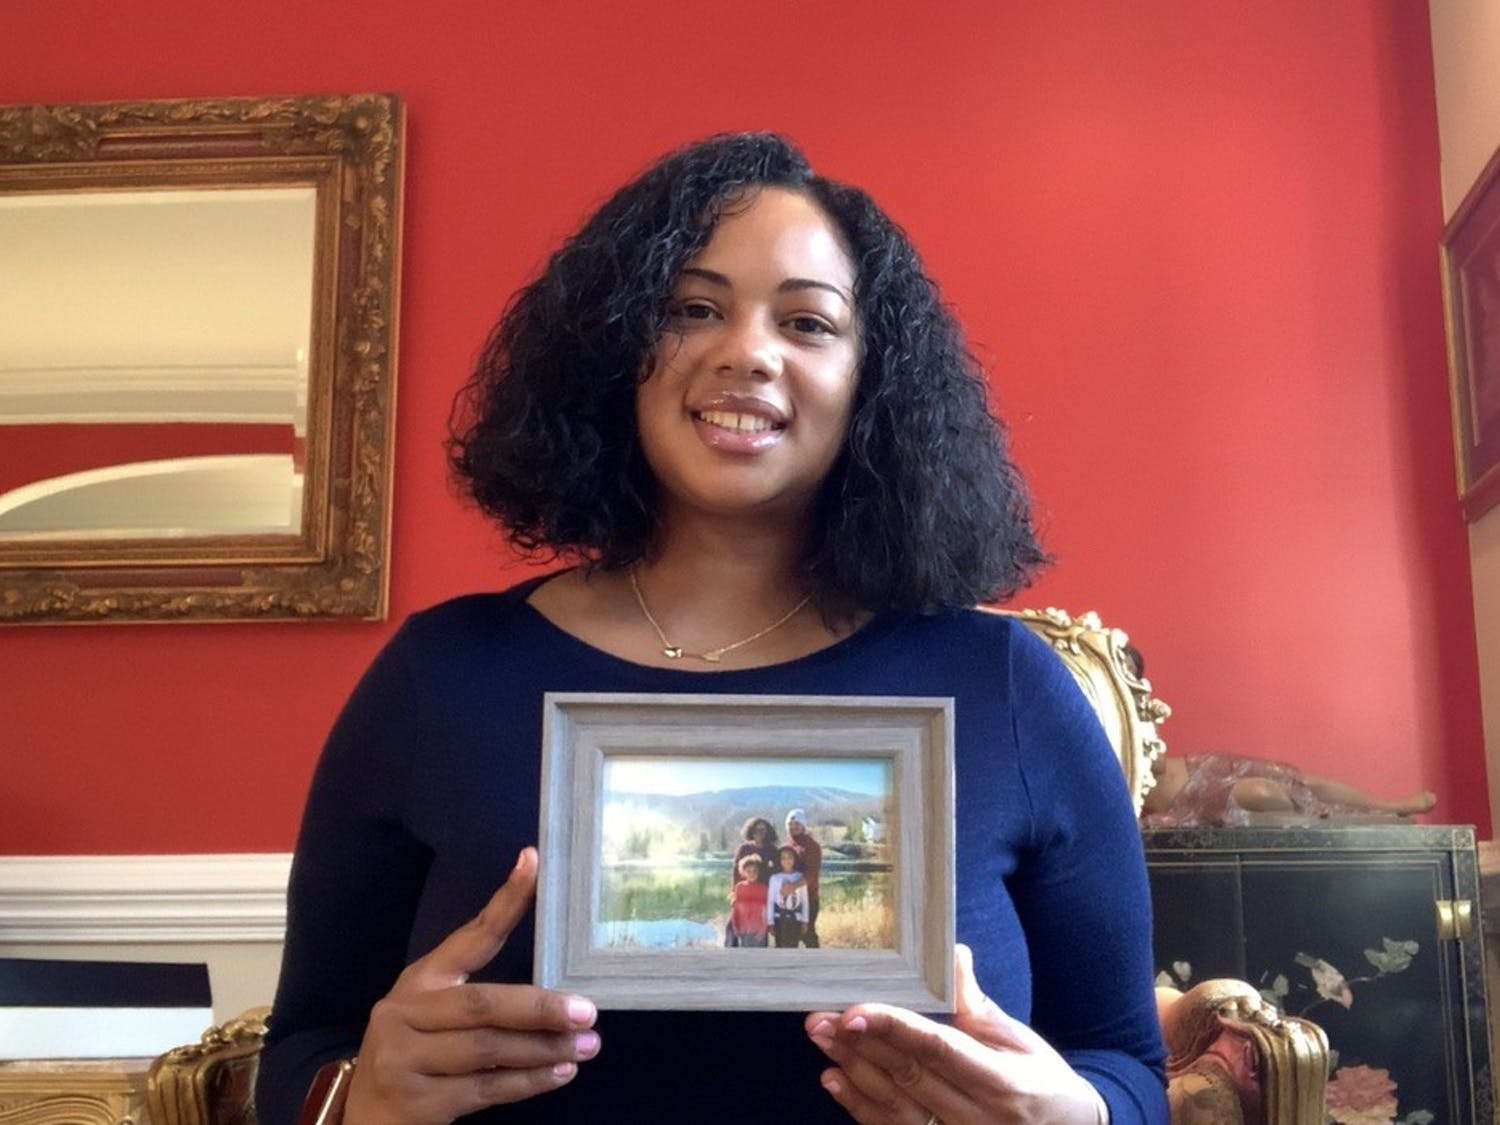 Jackie Carr-Martinez poses for a virtual portrait with a photo of her family in her home in Greensboro on Feb. 23, 2021. Carr-Martinez, who identifies as African-American, Indian and Guyanese, was afraid to return to the hospital after a painful experience with a white doctor the night before her first child's birth.